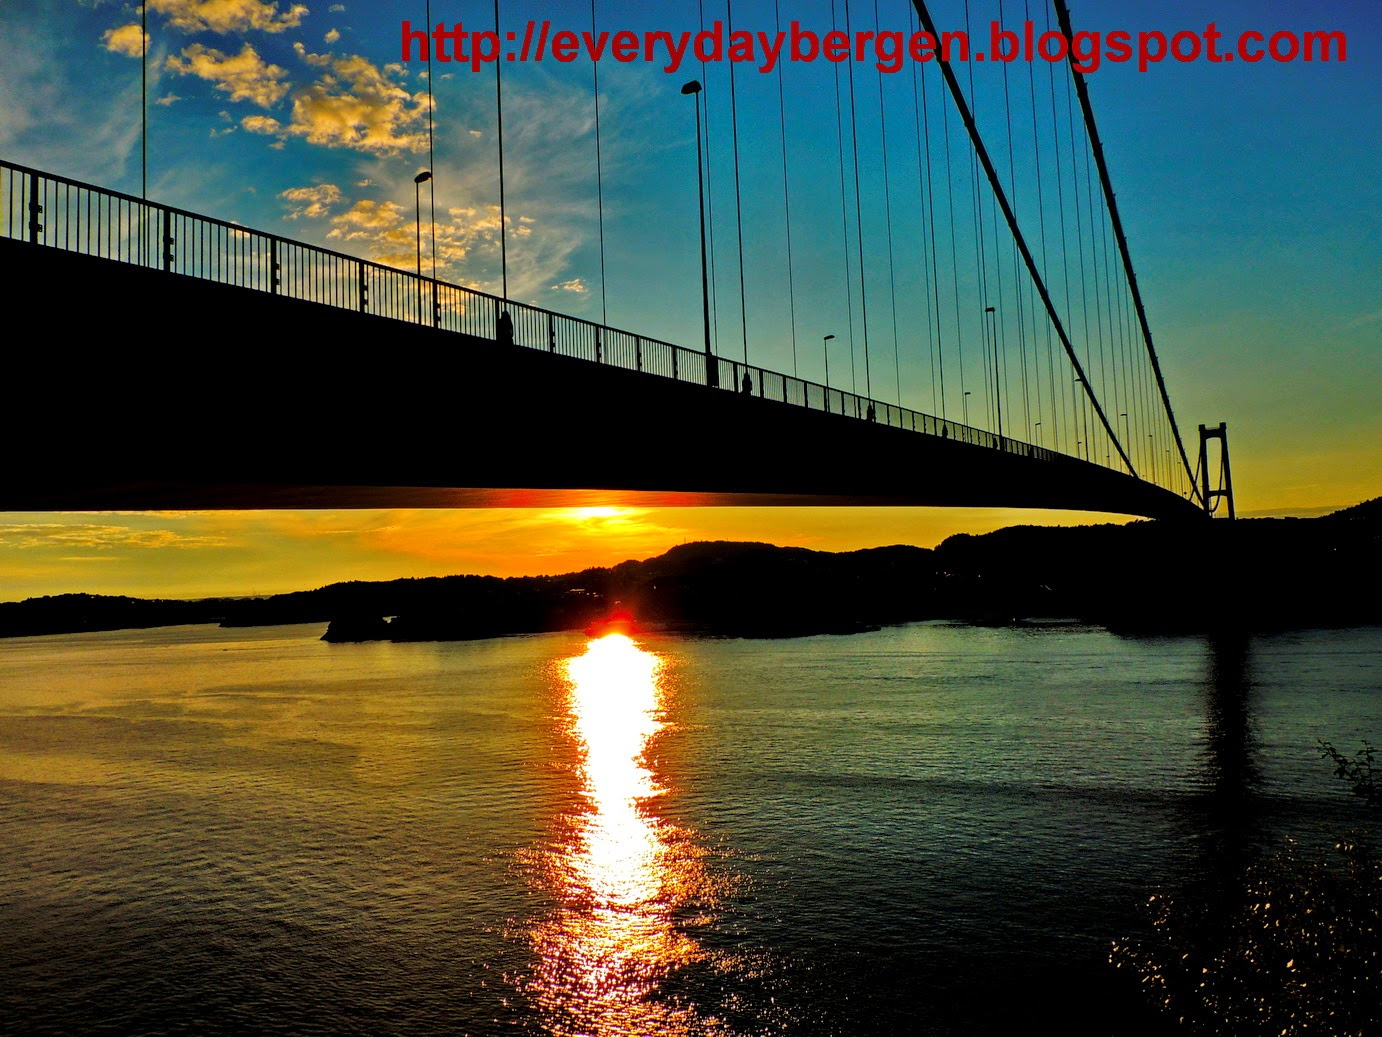 Magical sunset on Askøy bridge.